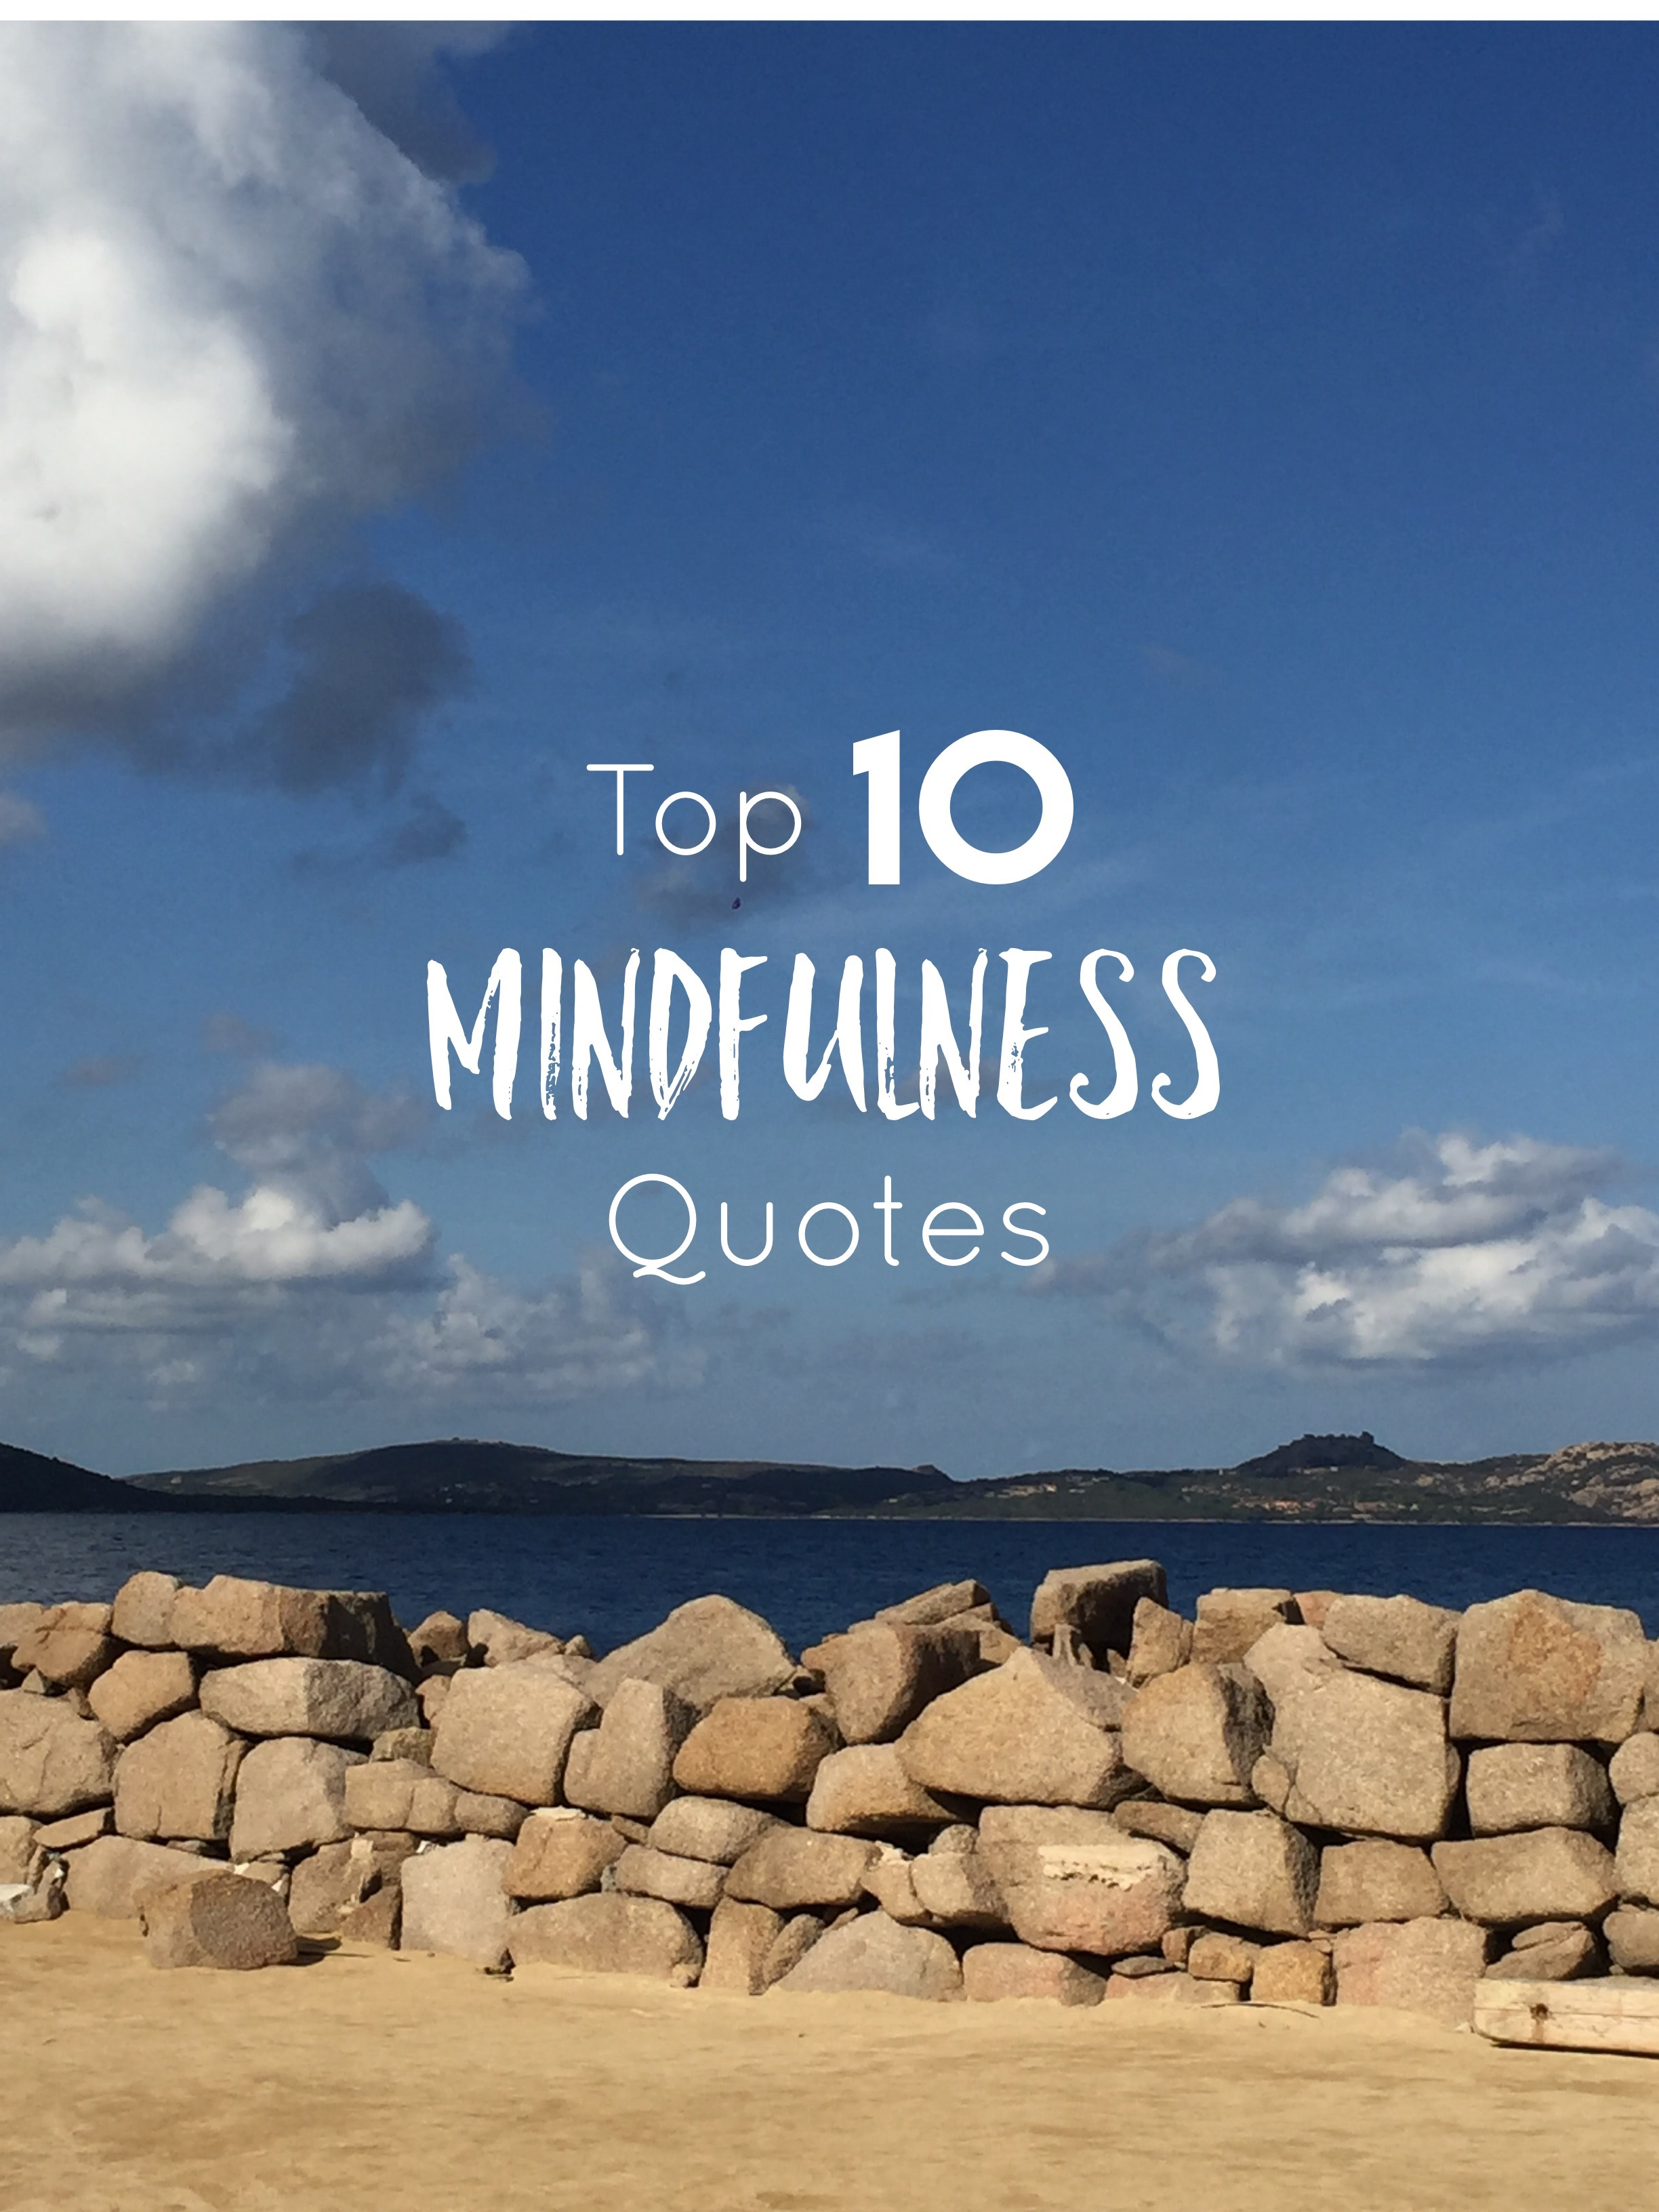 Top 10 Mindfulness Quotes